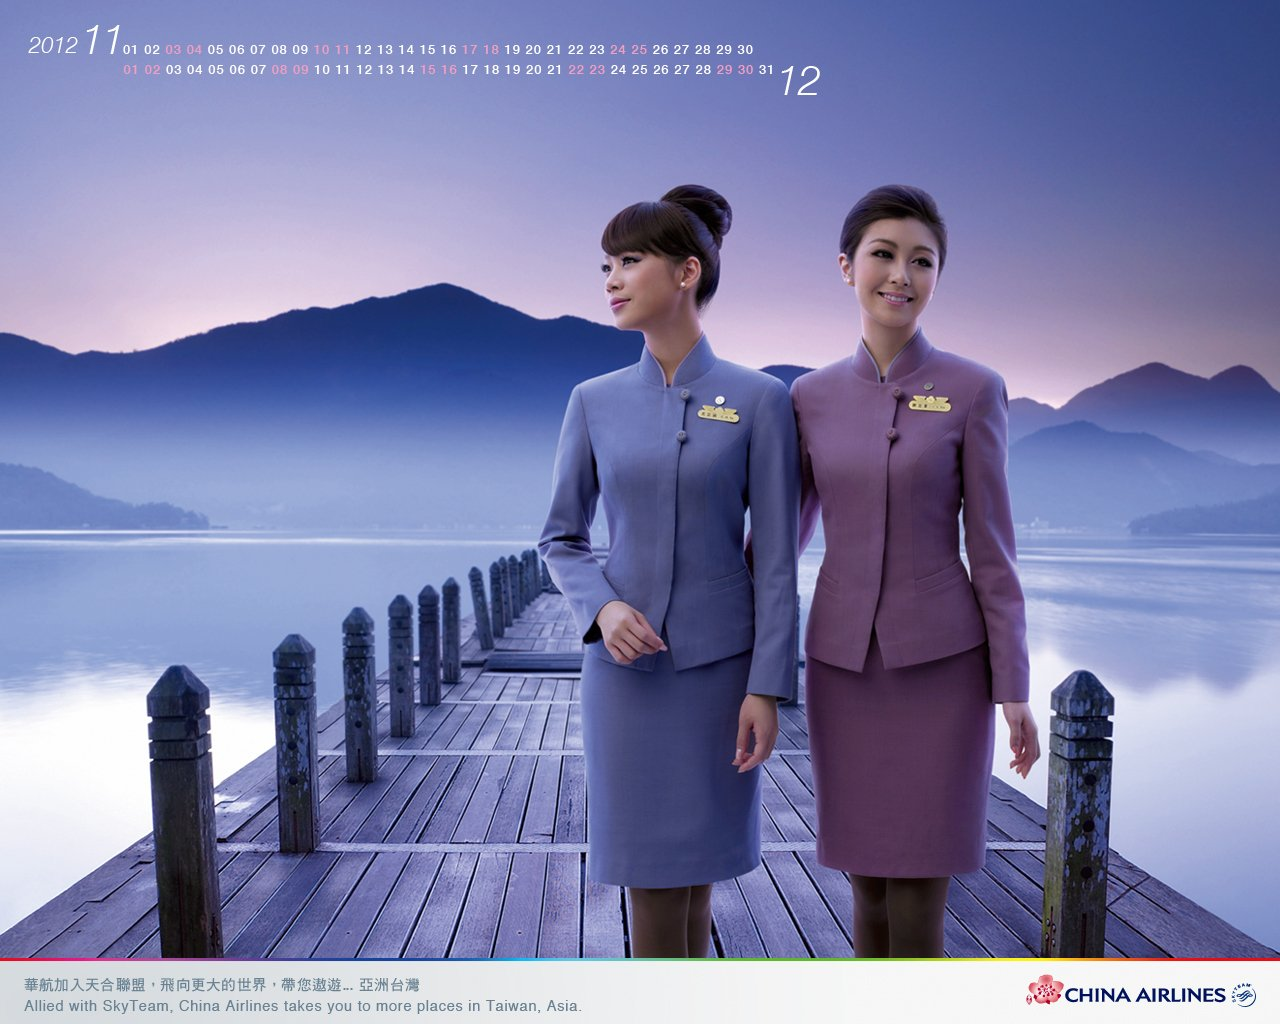 China Airlines httpwwwchina airlinescomch 1280x1024